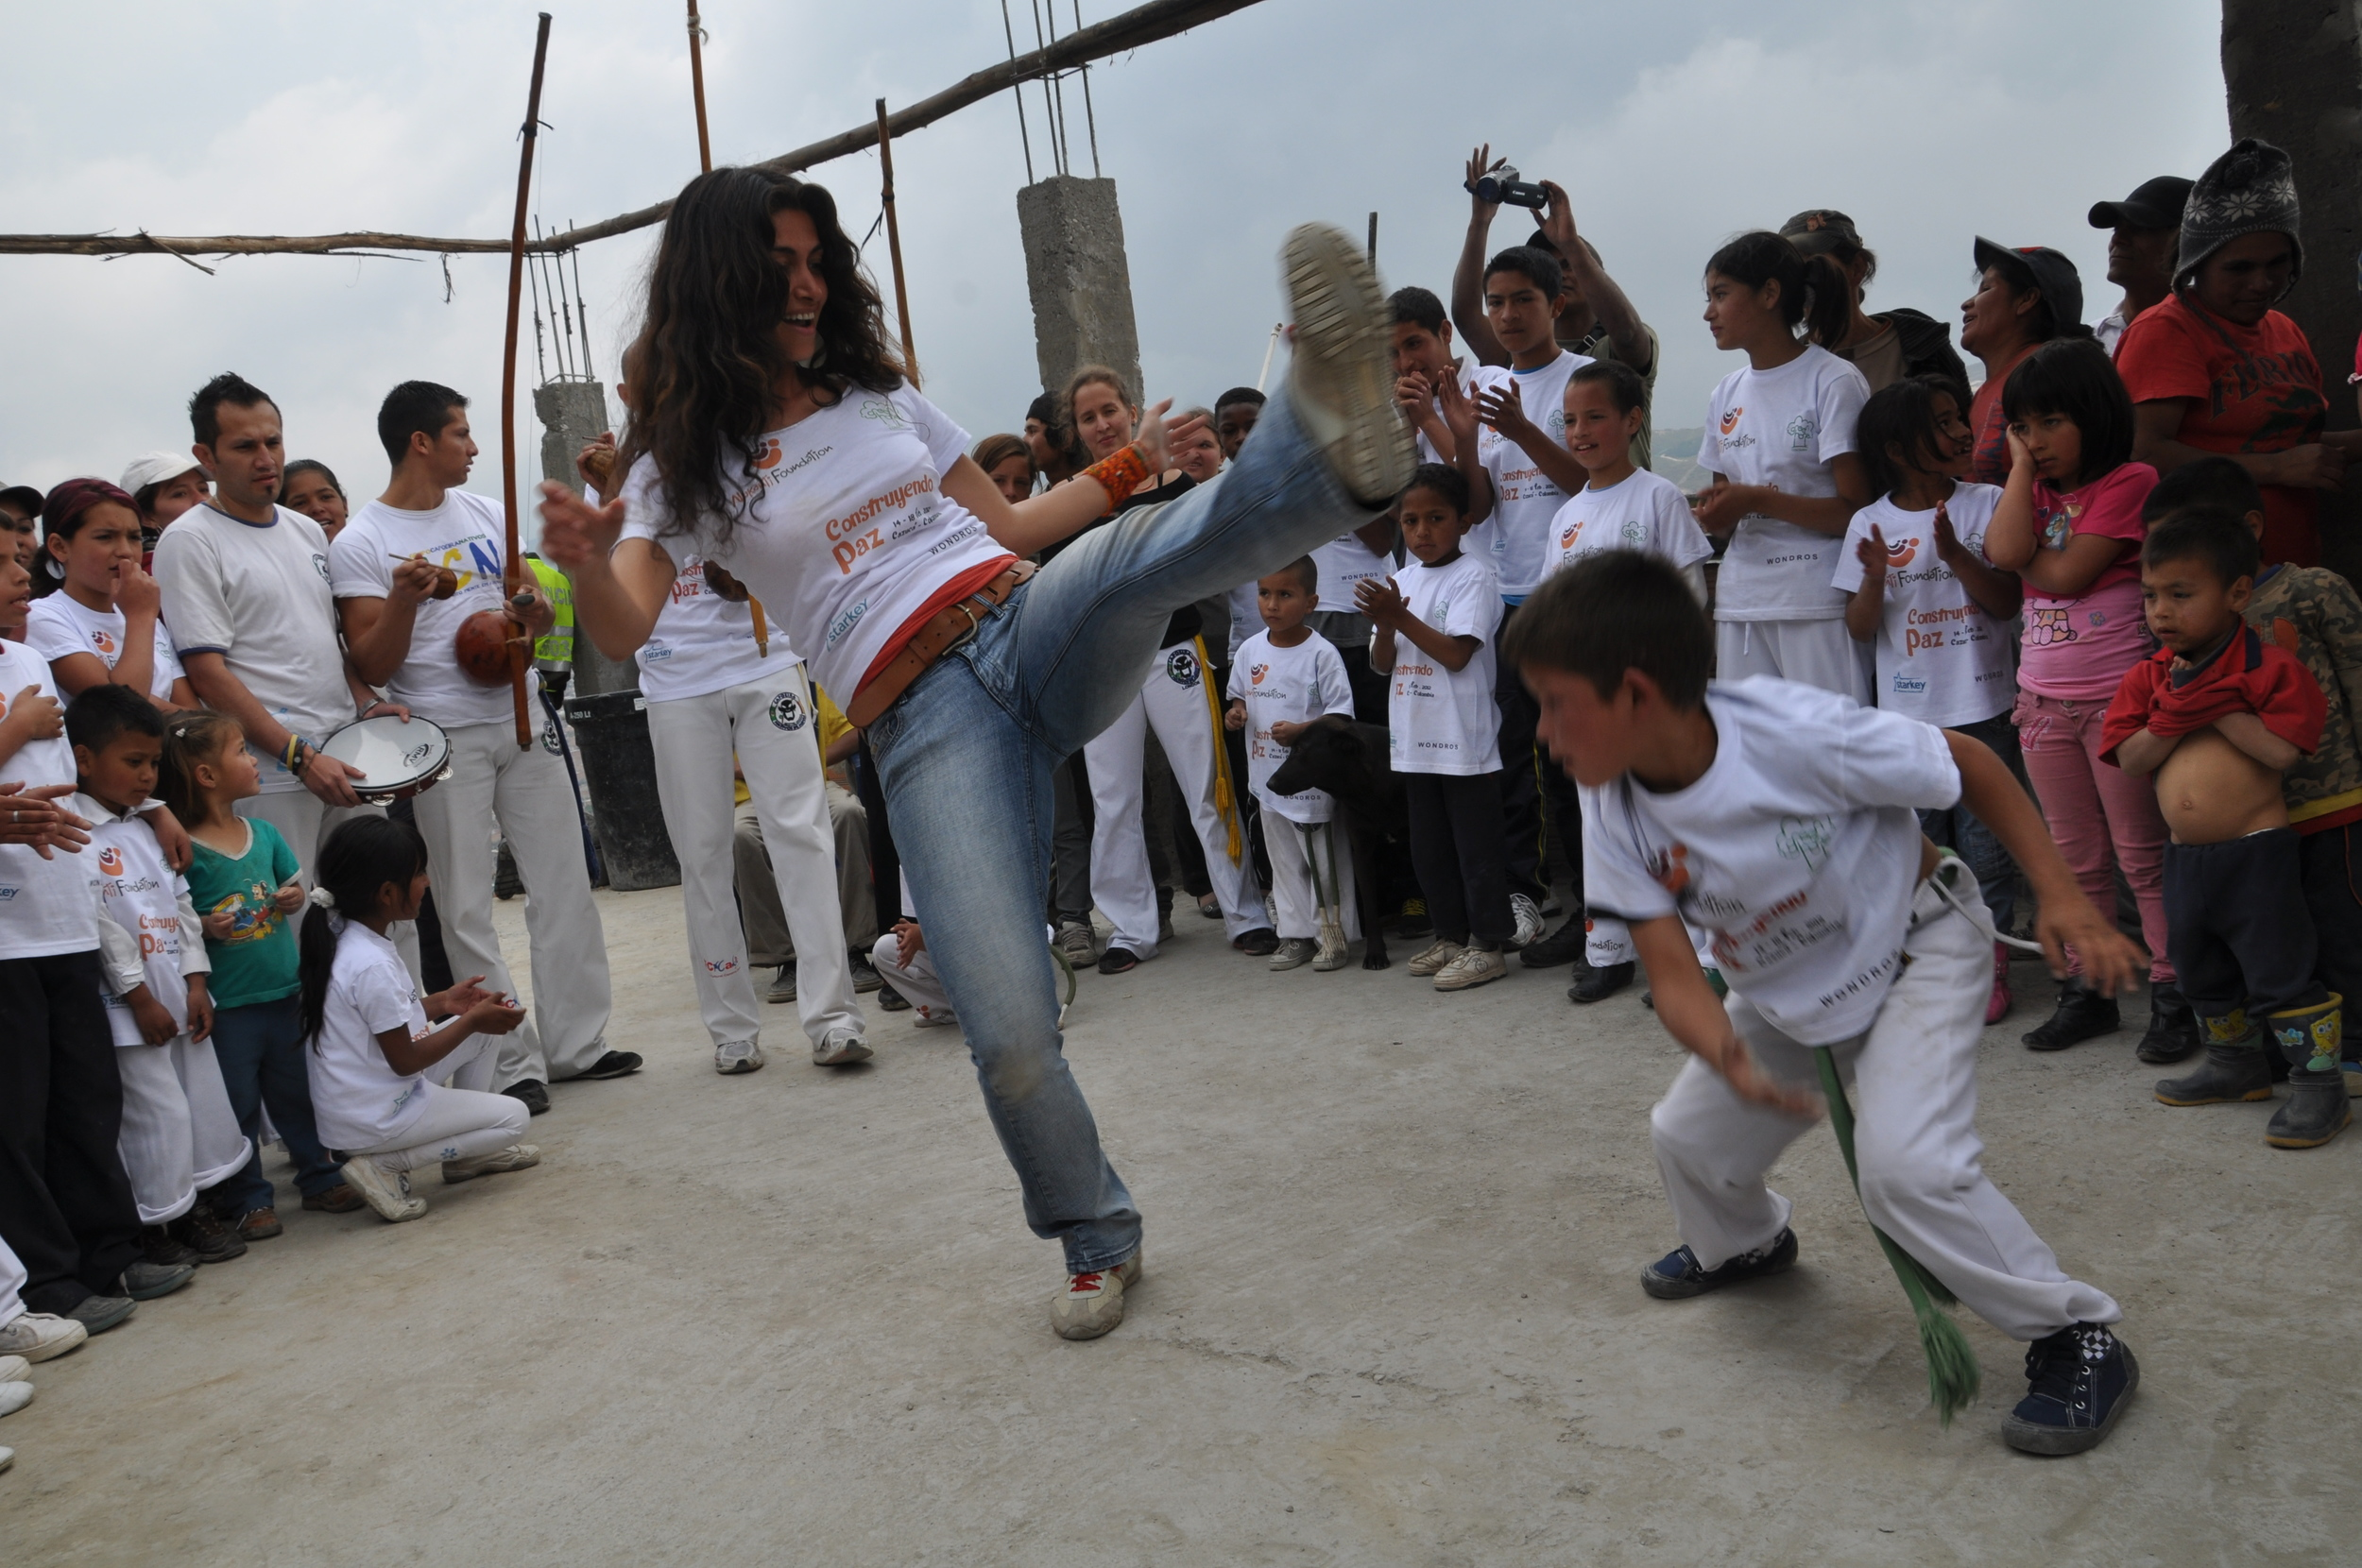 Niousha and a young participant from our Capoeira program Playing for Freedom in one of the first rodas in Cazucá, before the center was built.